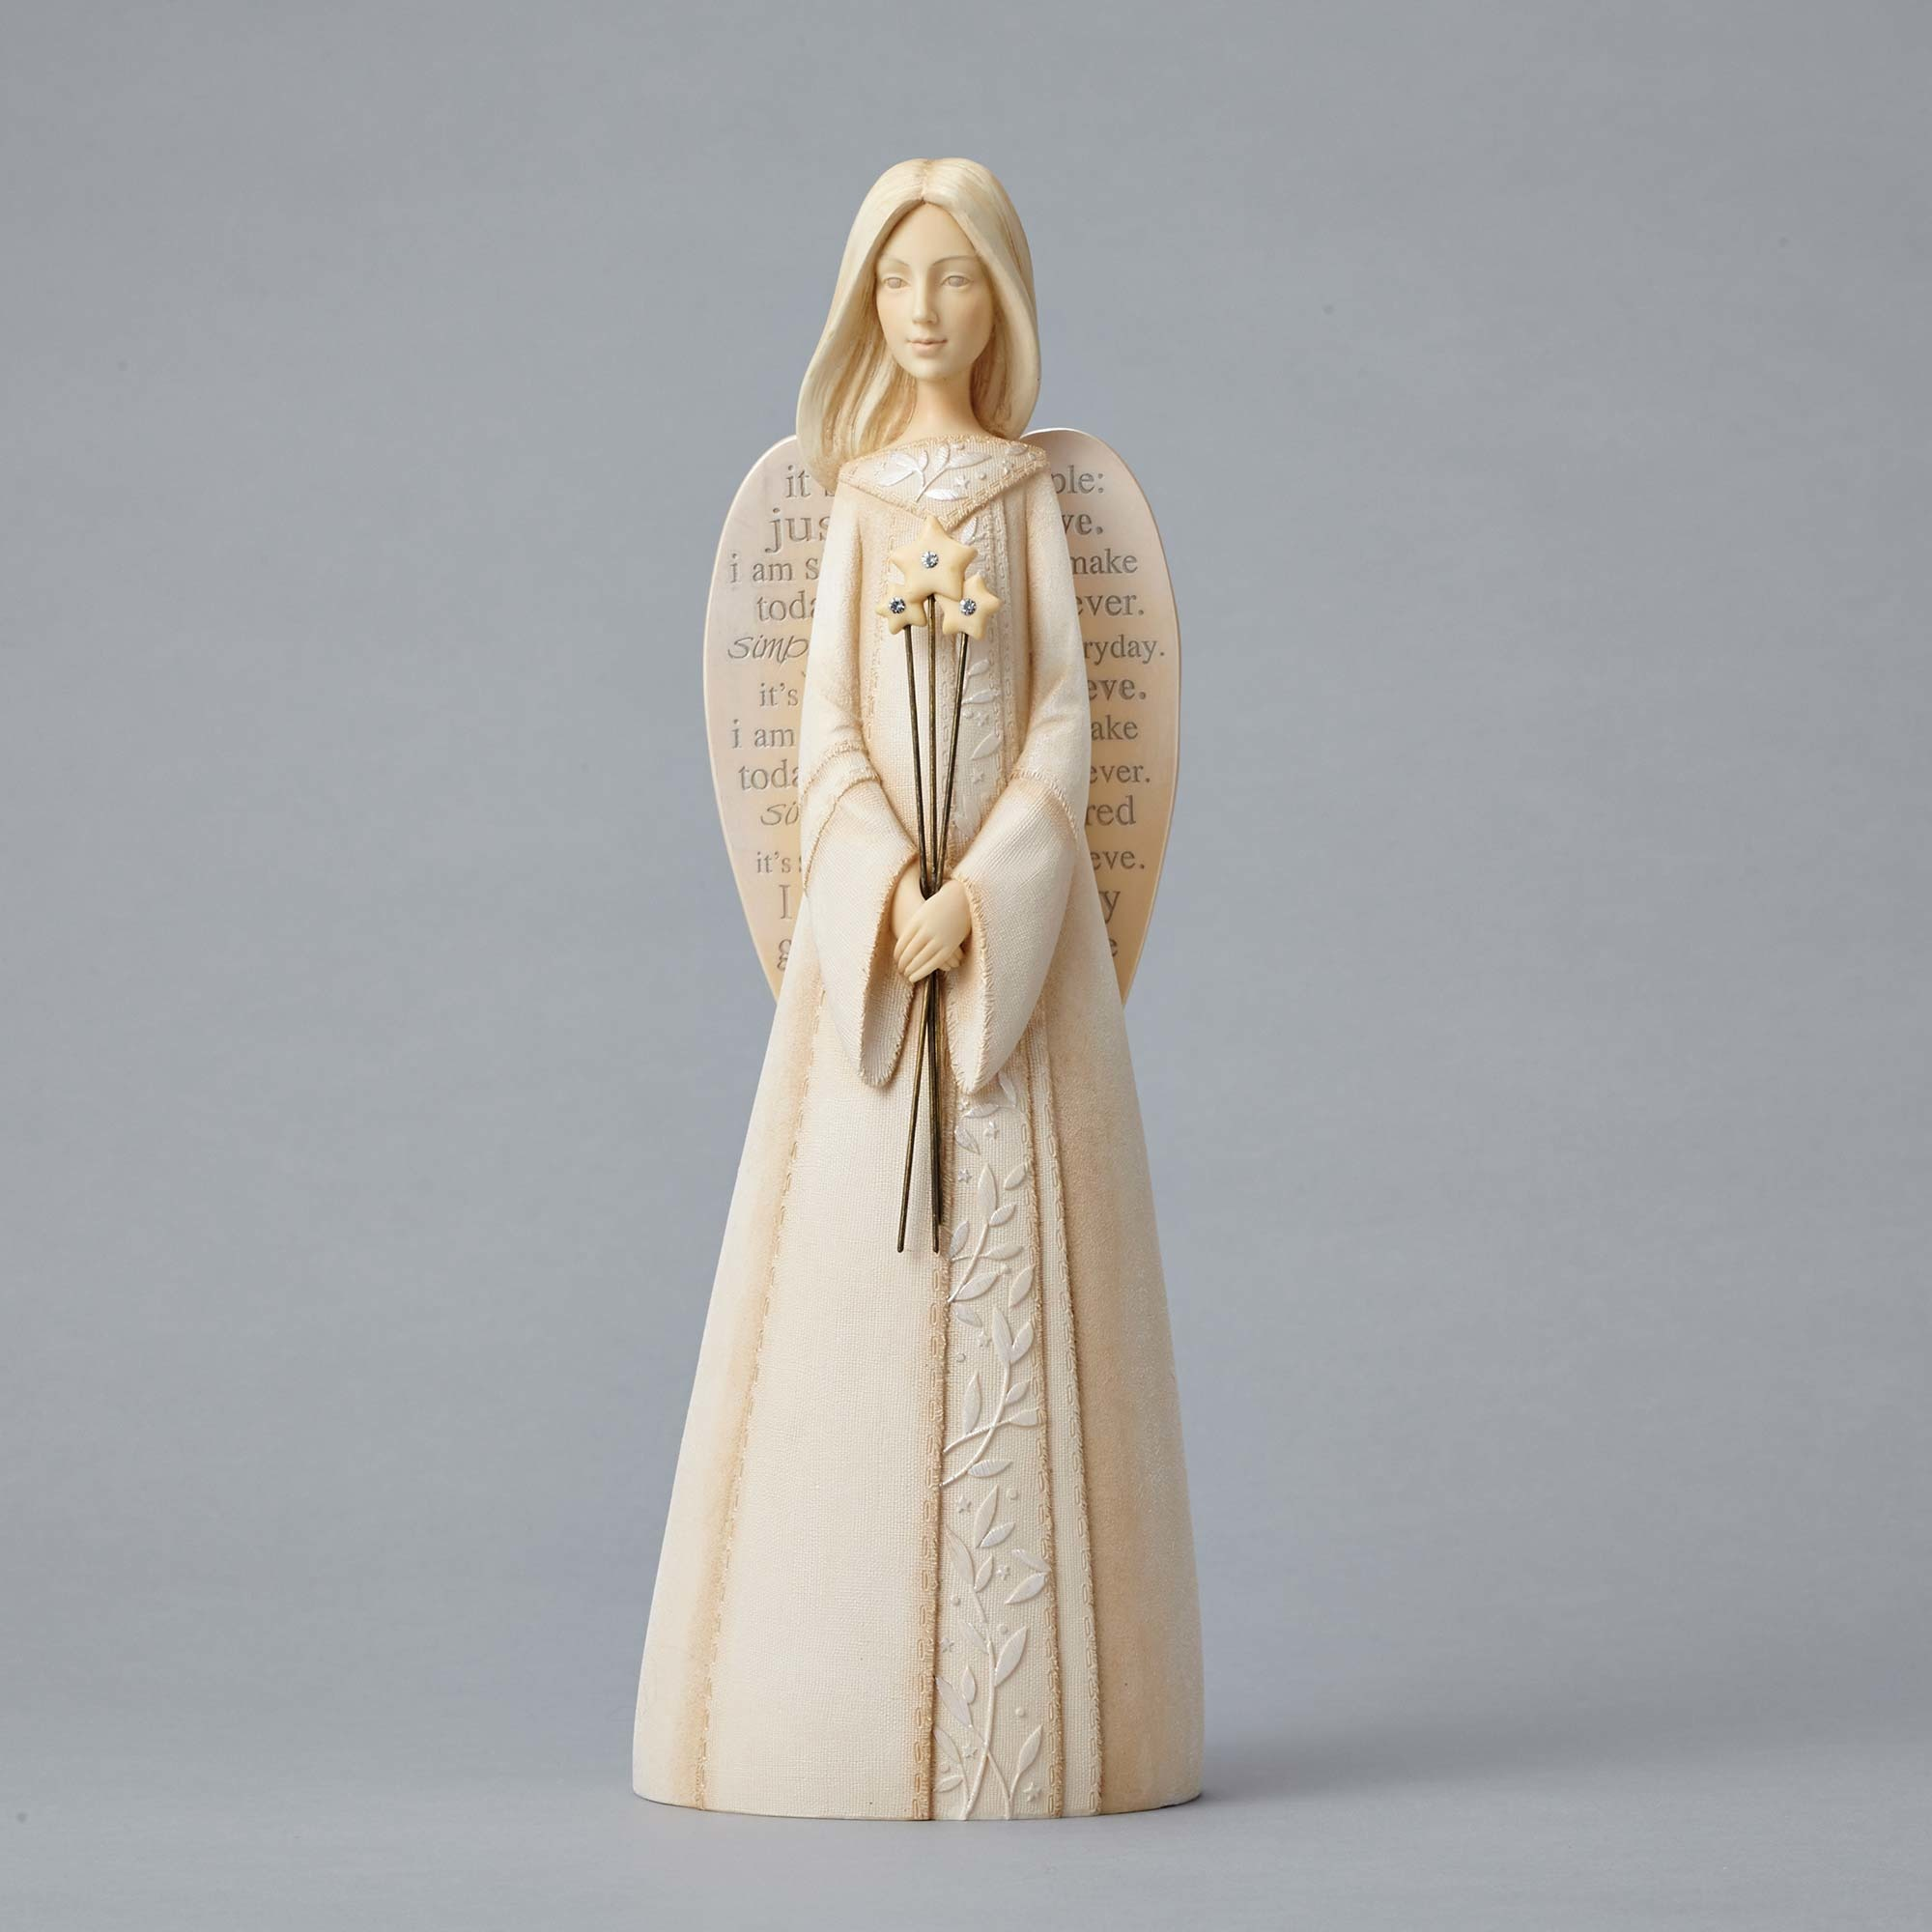 Believe Angel - Enesco 4050128 by Karen Hahn